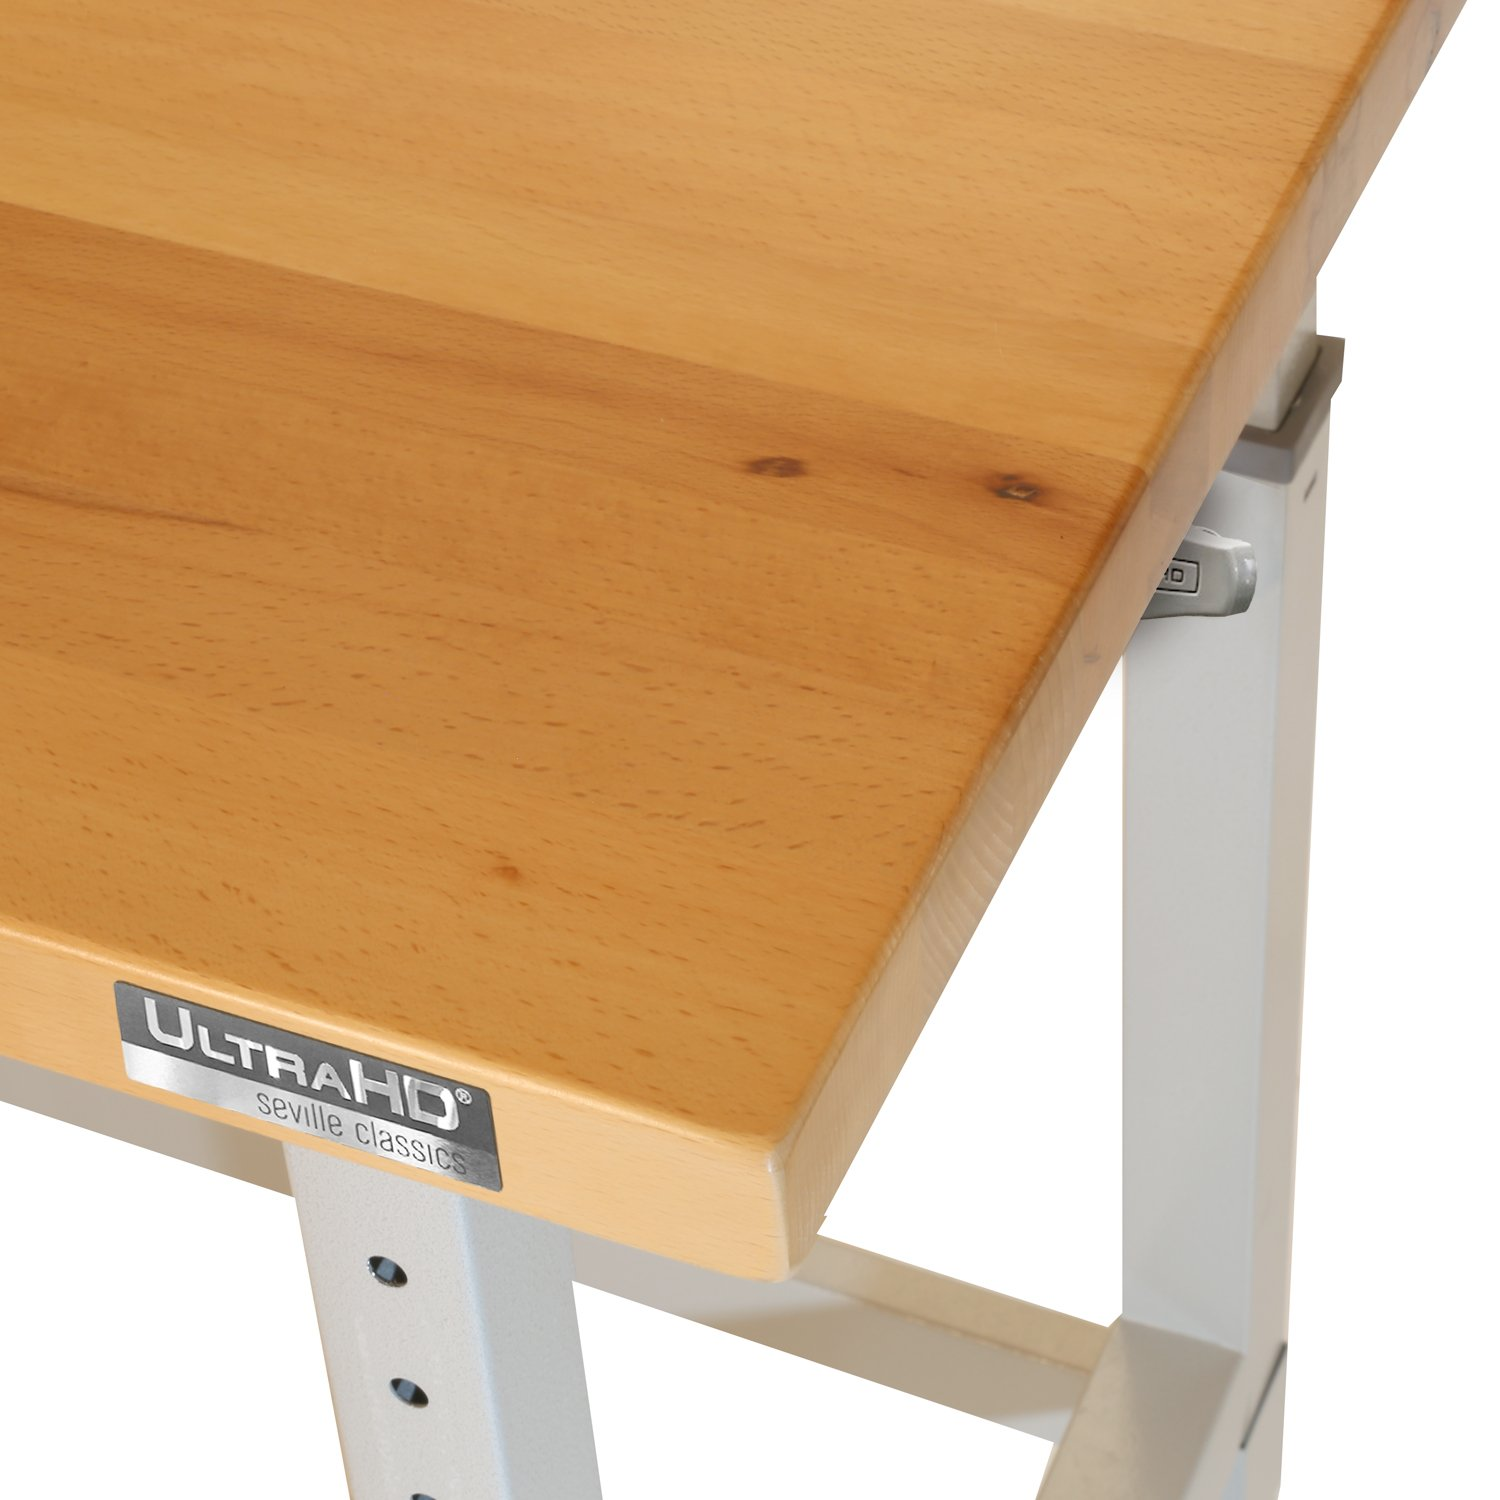 UltraHD Adjustable Height Heavy-Duty Wood Top Workbench, 48'' x 24'' by Seville Classics (Image #5)